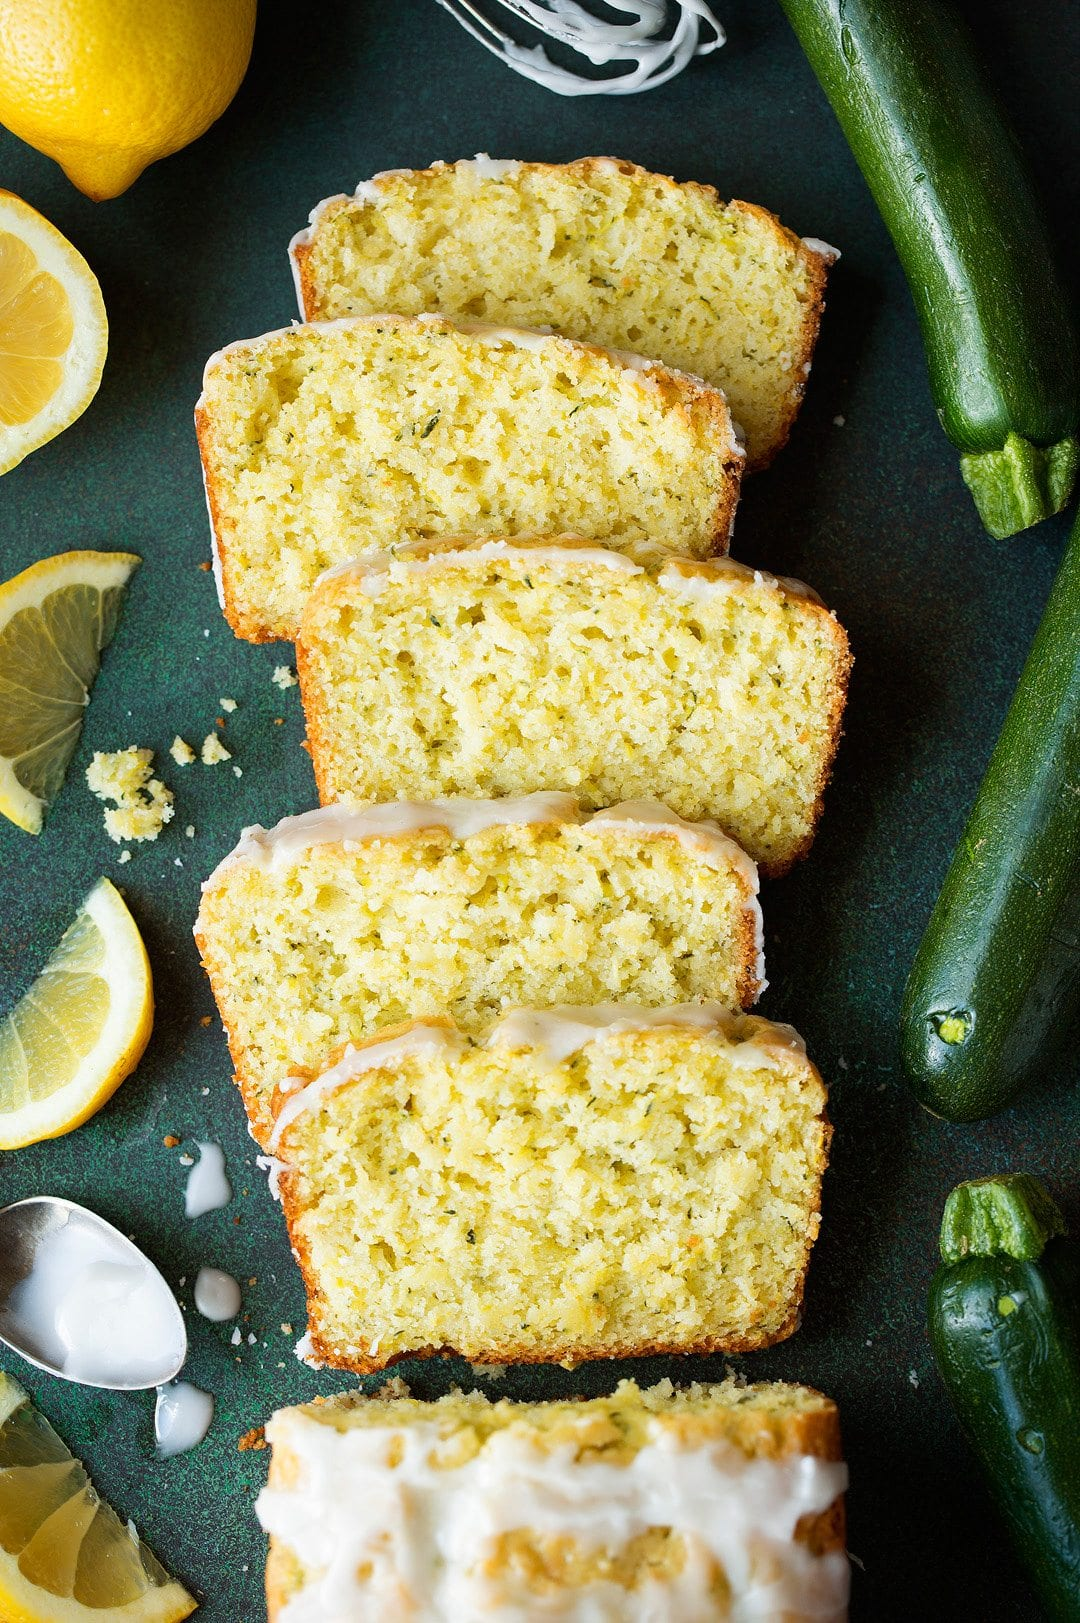 Overhead image of 5 slices of yellow Lemon Zucchini Bread laying on green surface with fresh zucchini and lemons surrounding the bread slices.